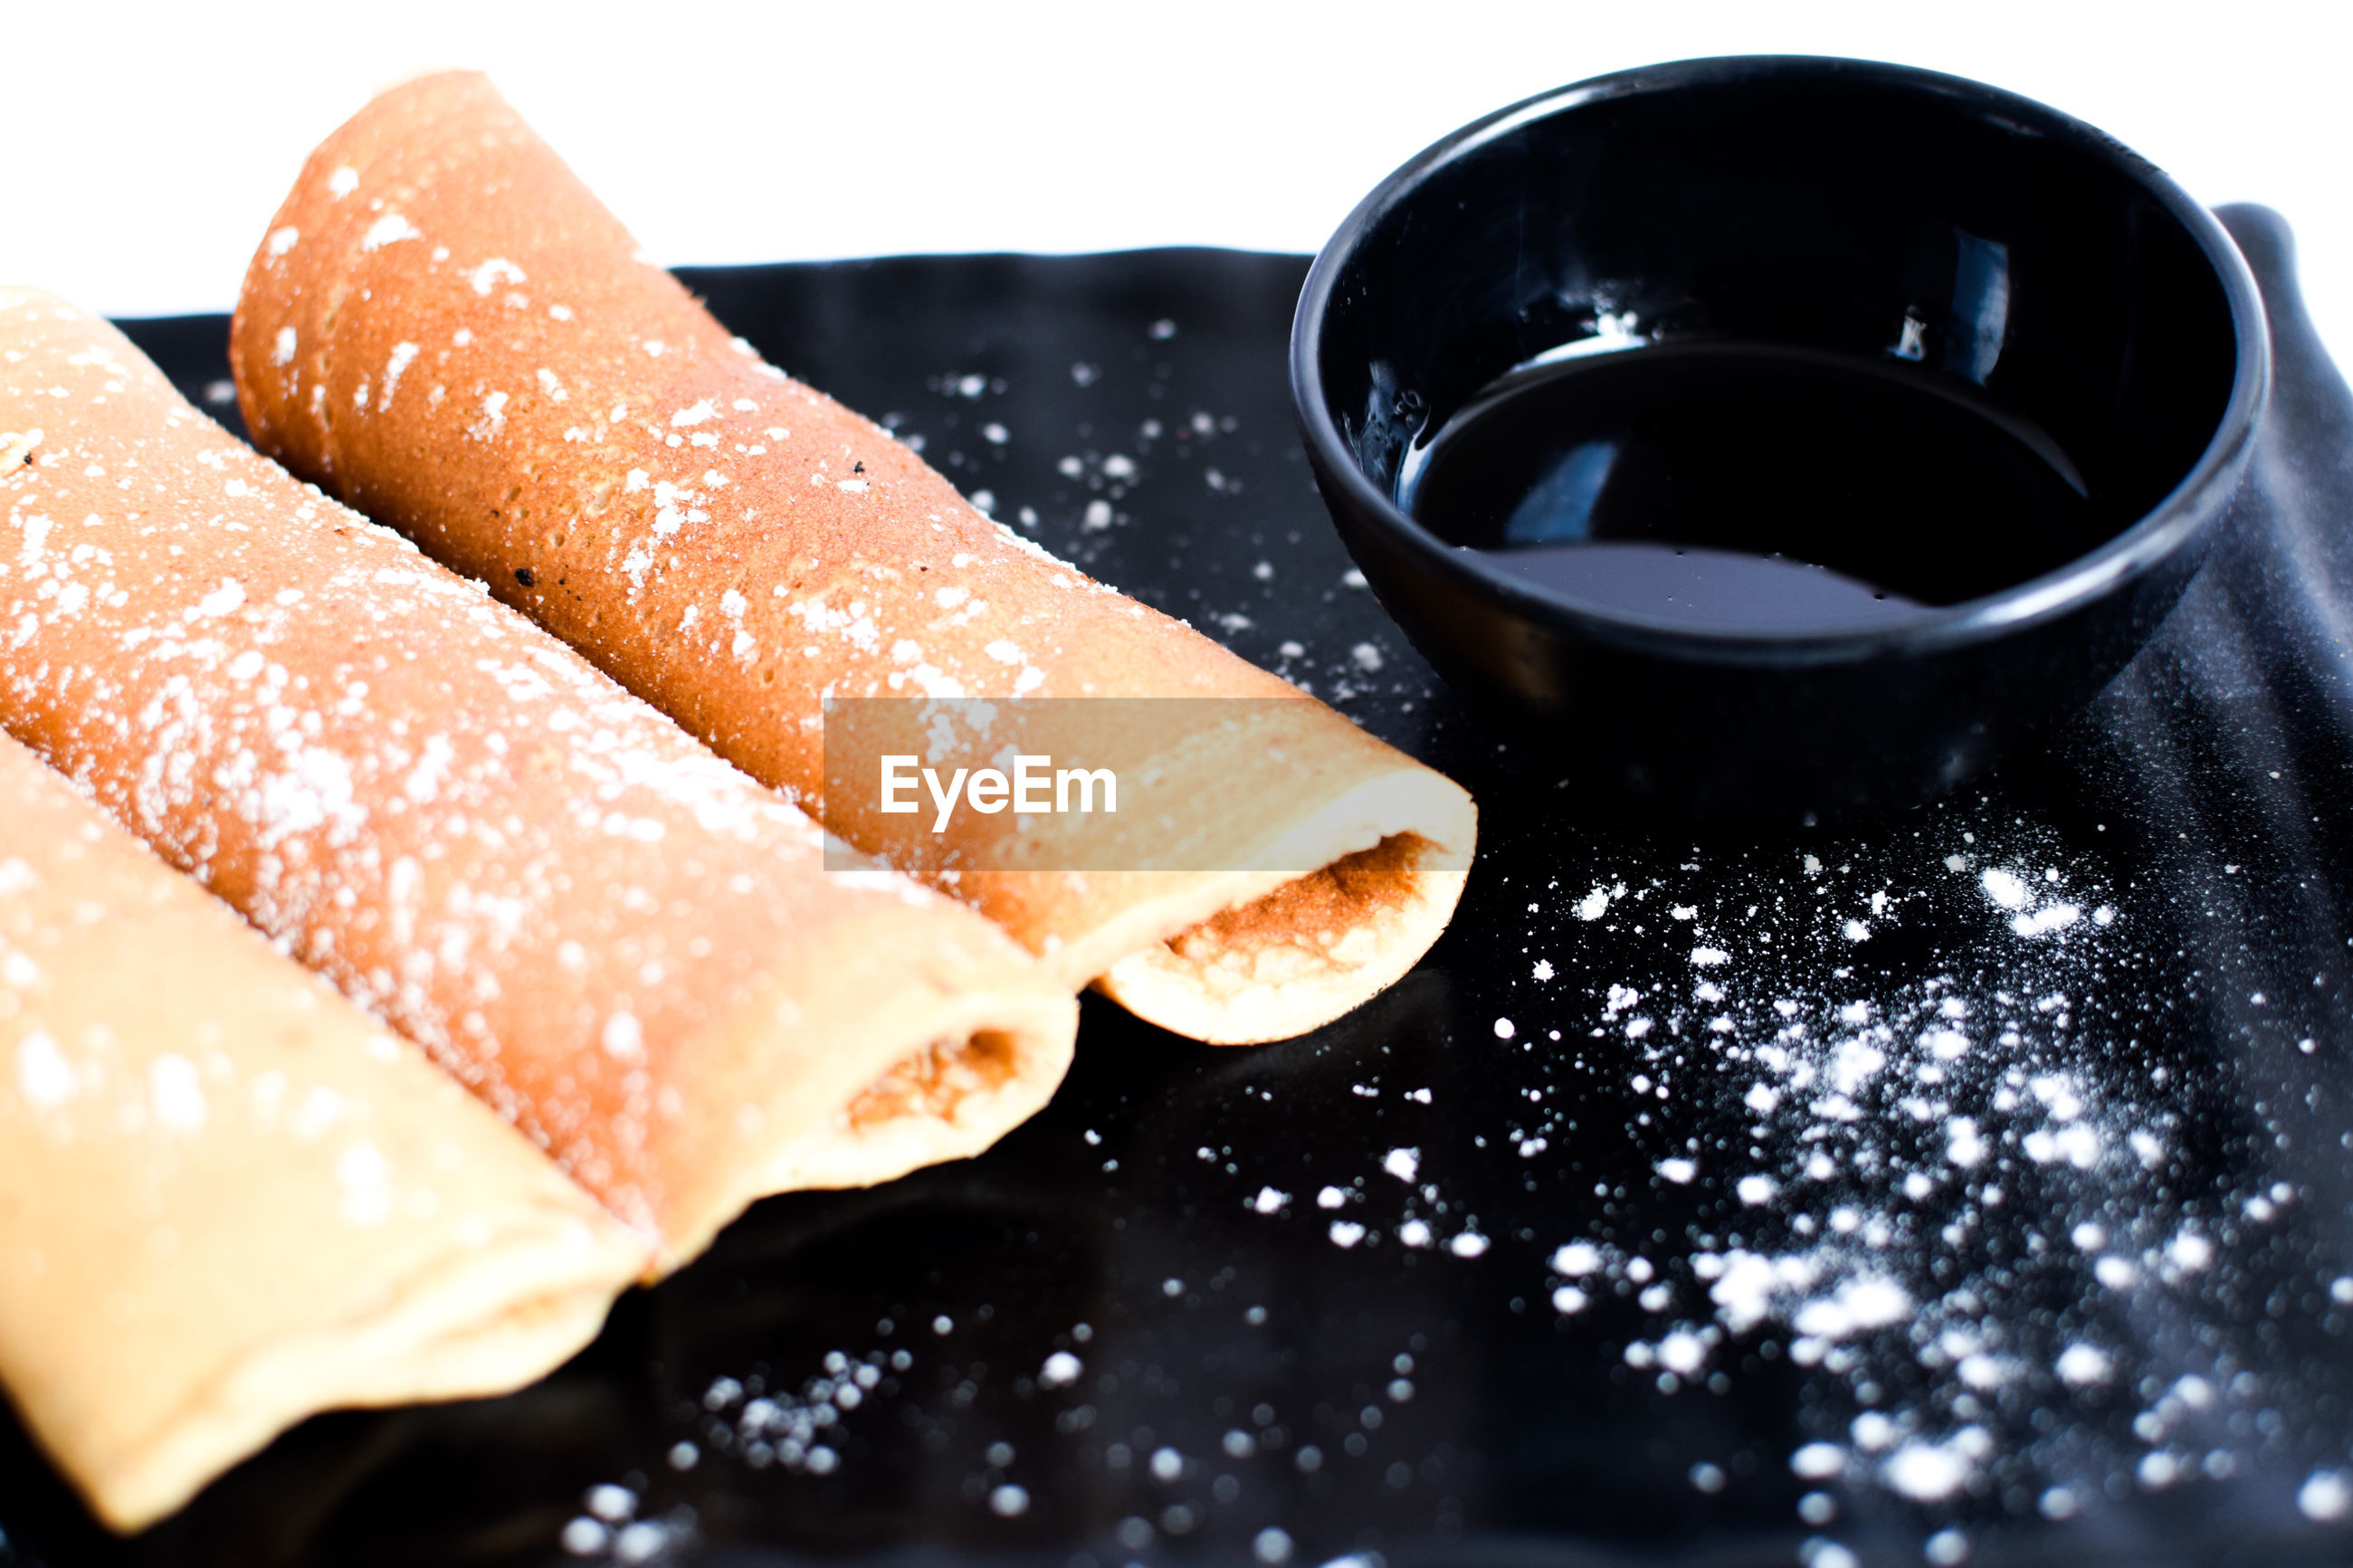 Close-up of rolled crepe against white background